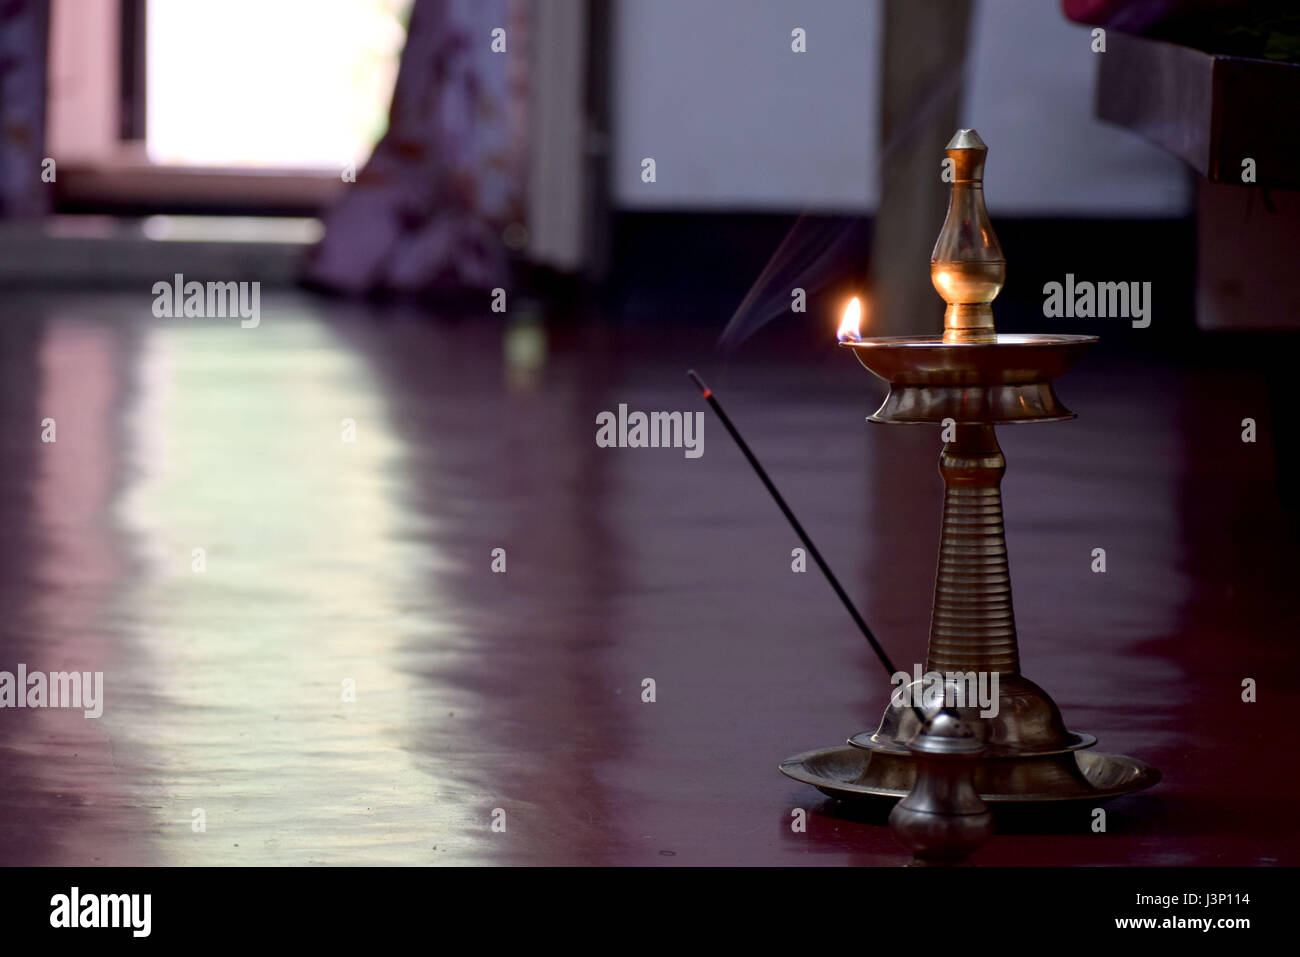 People in India used to light up the lamp everyday morning and evening in devotion to god - Stock Image